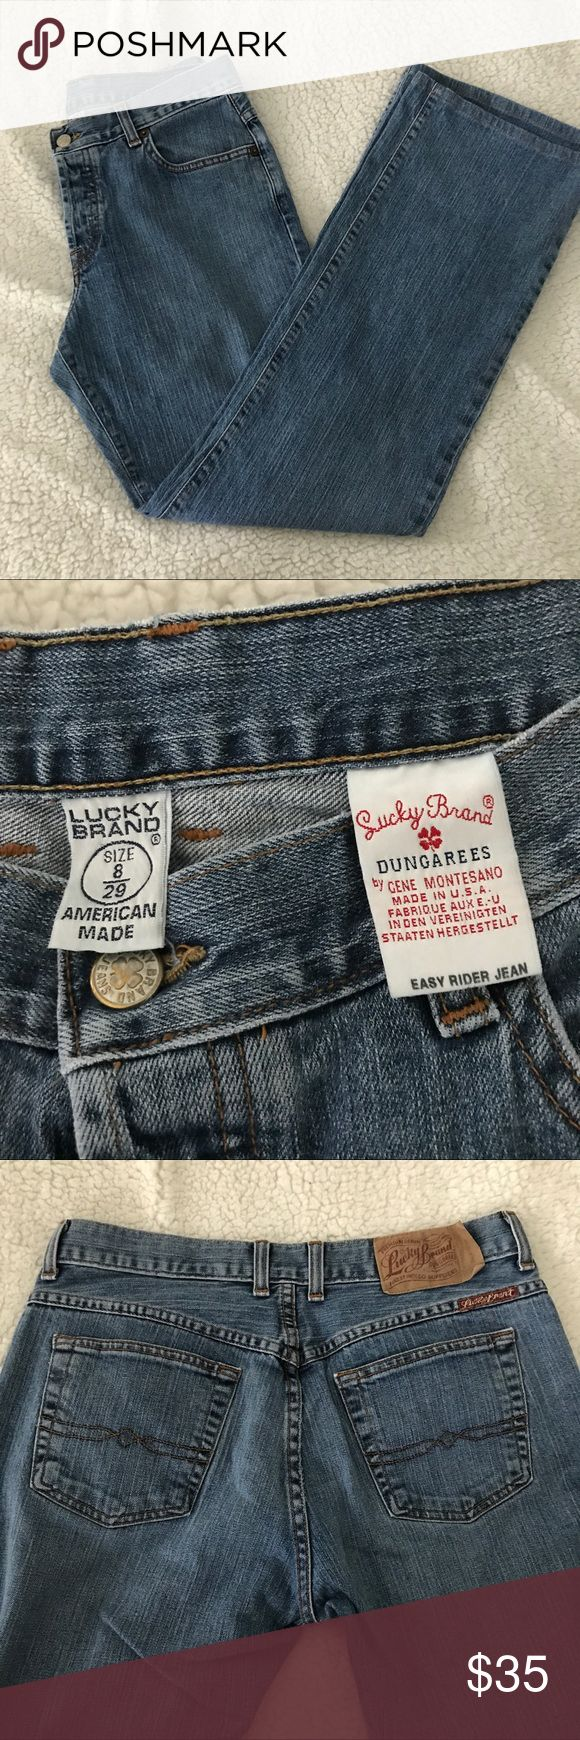 Lucky Brand Easy Rider Jeans Lucky Brand Easy Rider Jeans Women's size 8 - 29. Very good condition. Button front, no cuts, rips Inseam 30 inches Lucky Brand Jeans Straight Leg